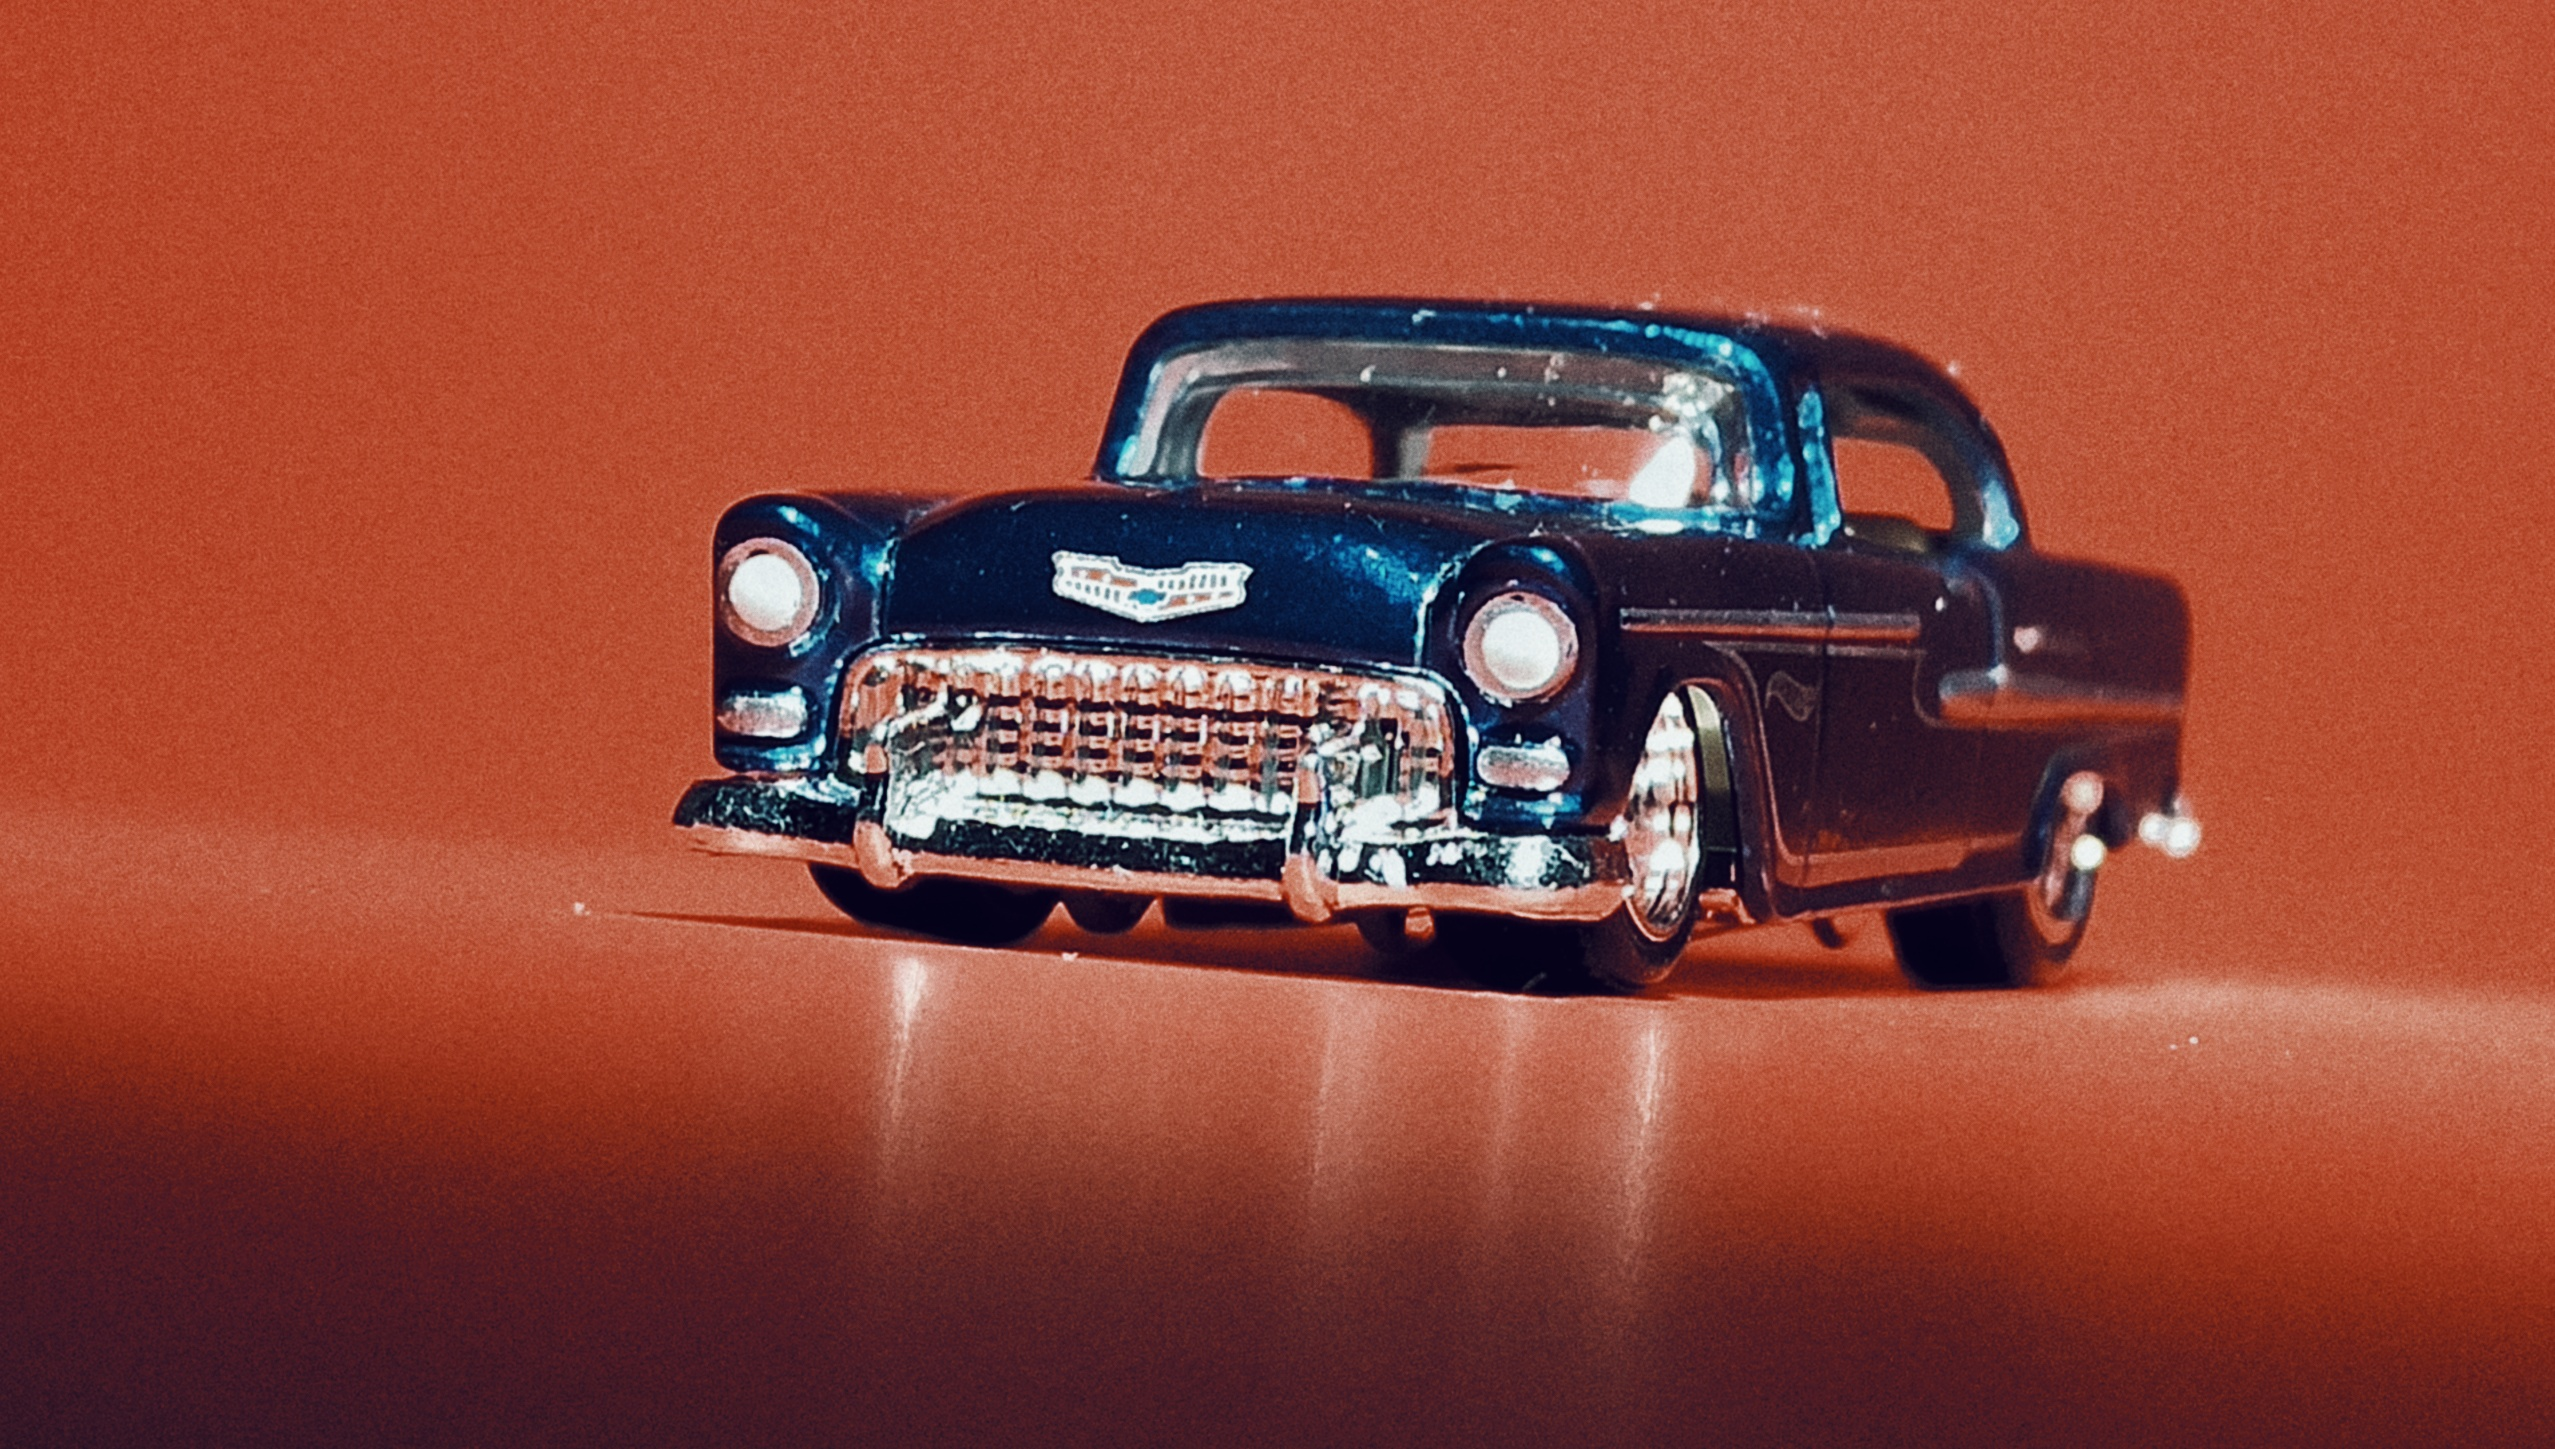 Hot Wheels '55 Chevy () 2020 (20/250) Chevy Bel Air (175) spectraflame blue Super Treasure Hunt (STH) front angle